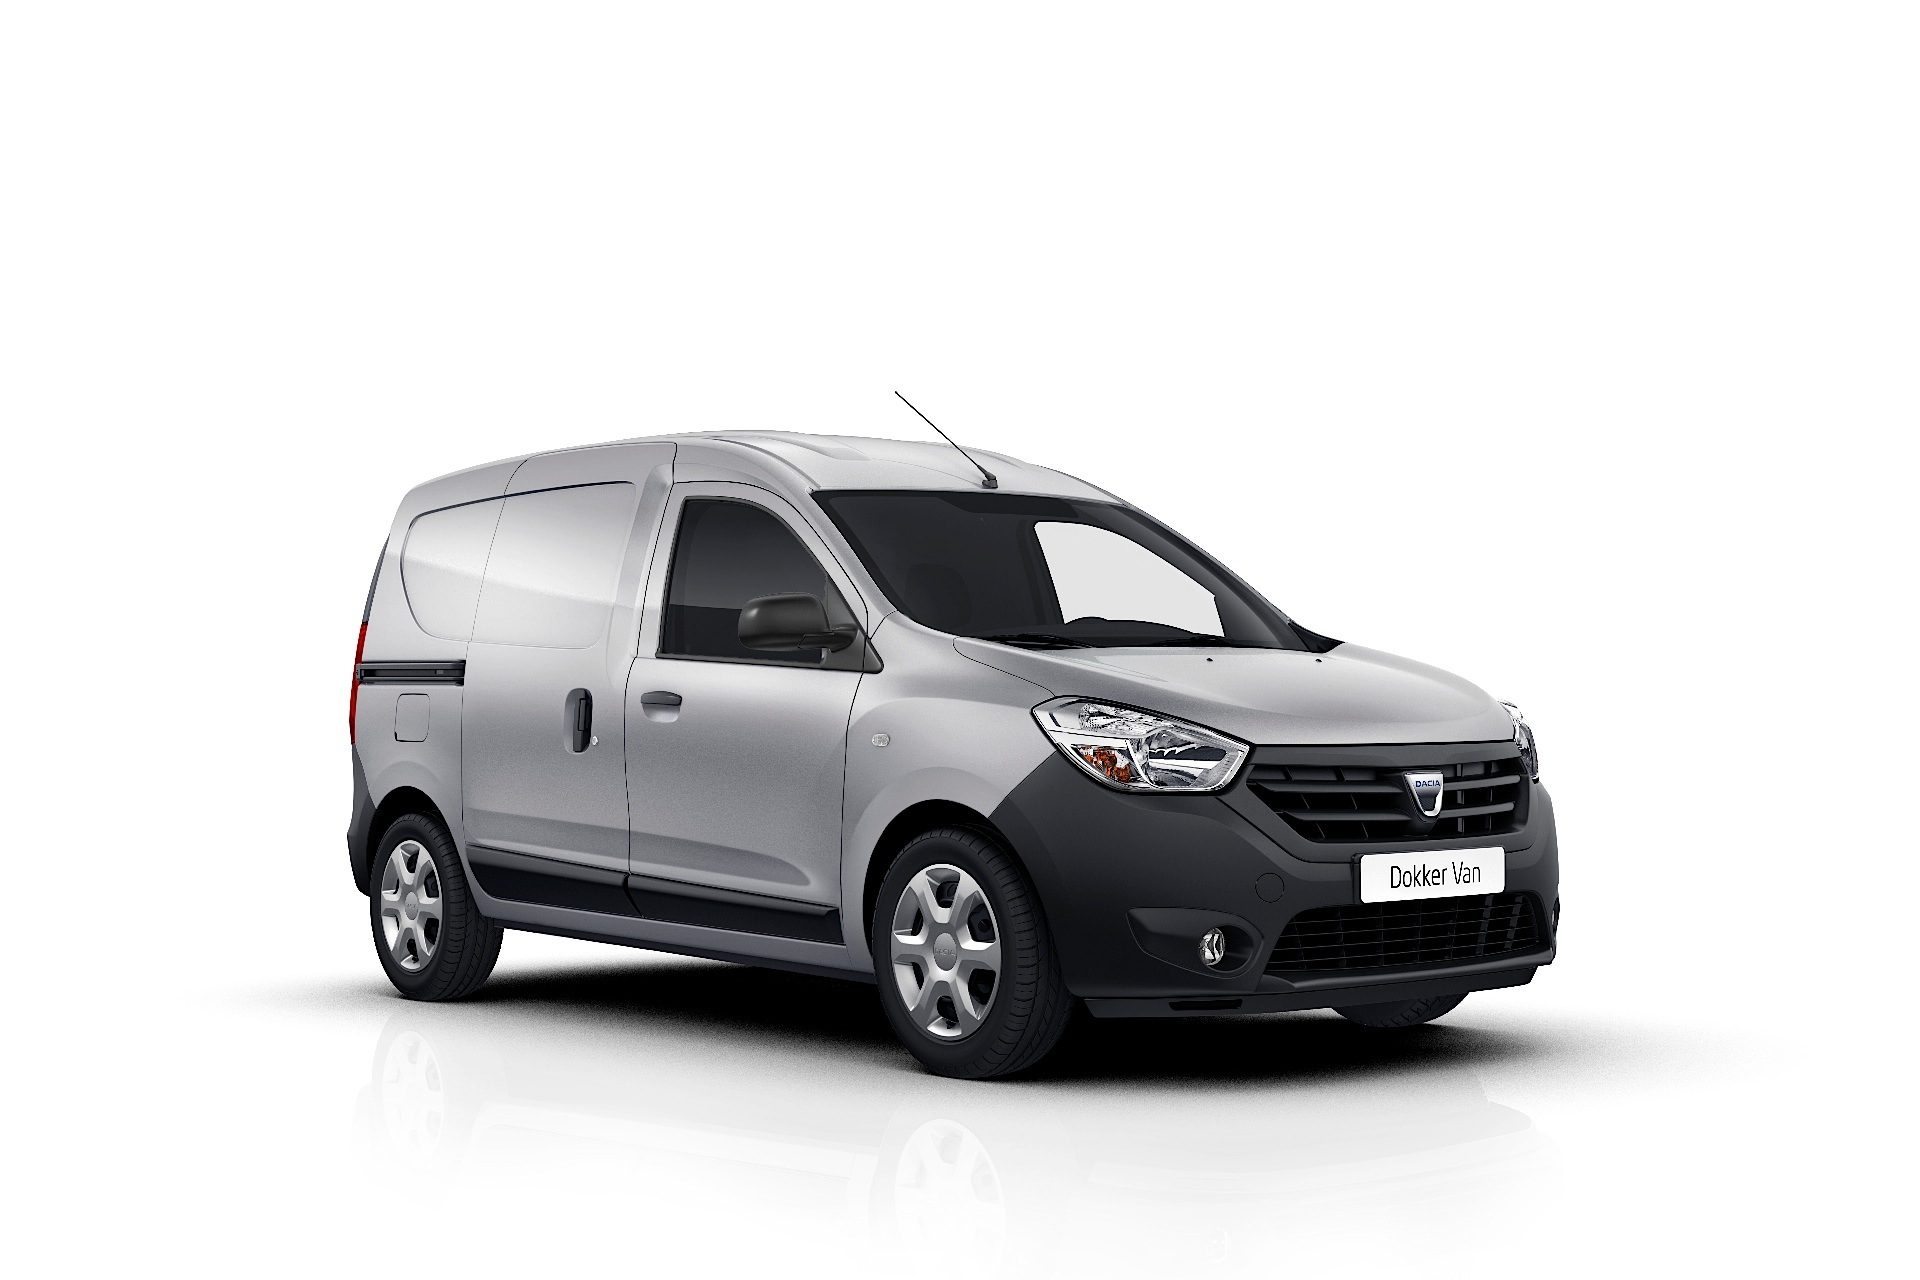 dacia dokker van specs 2012 2013 2014 2015 2016 2017 2018 autoevolution. Black Bedroom Furniture Sets. Home Design Ideas